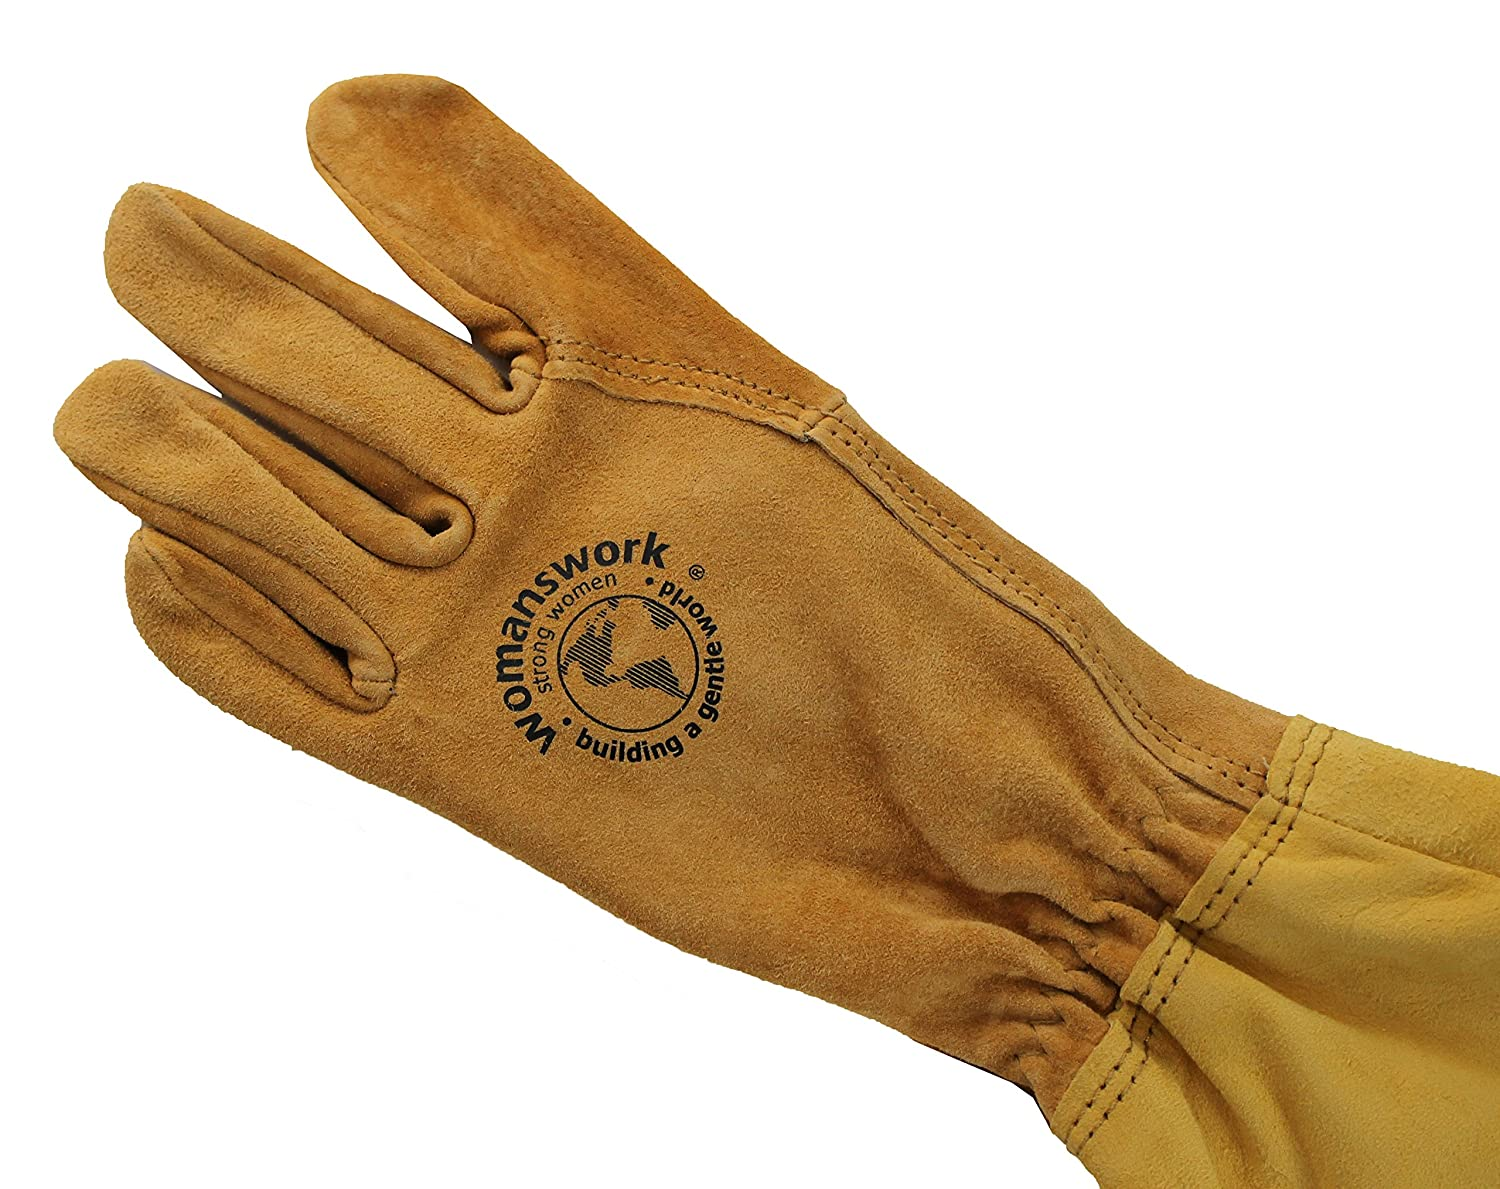 Amazon.com: Womanswork Rose Gauntlet Leather Garden Gloves – Made in ...